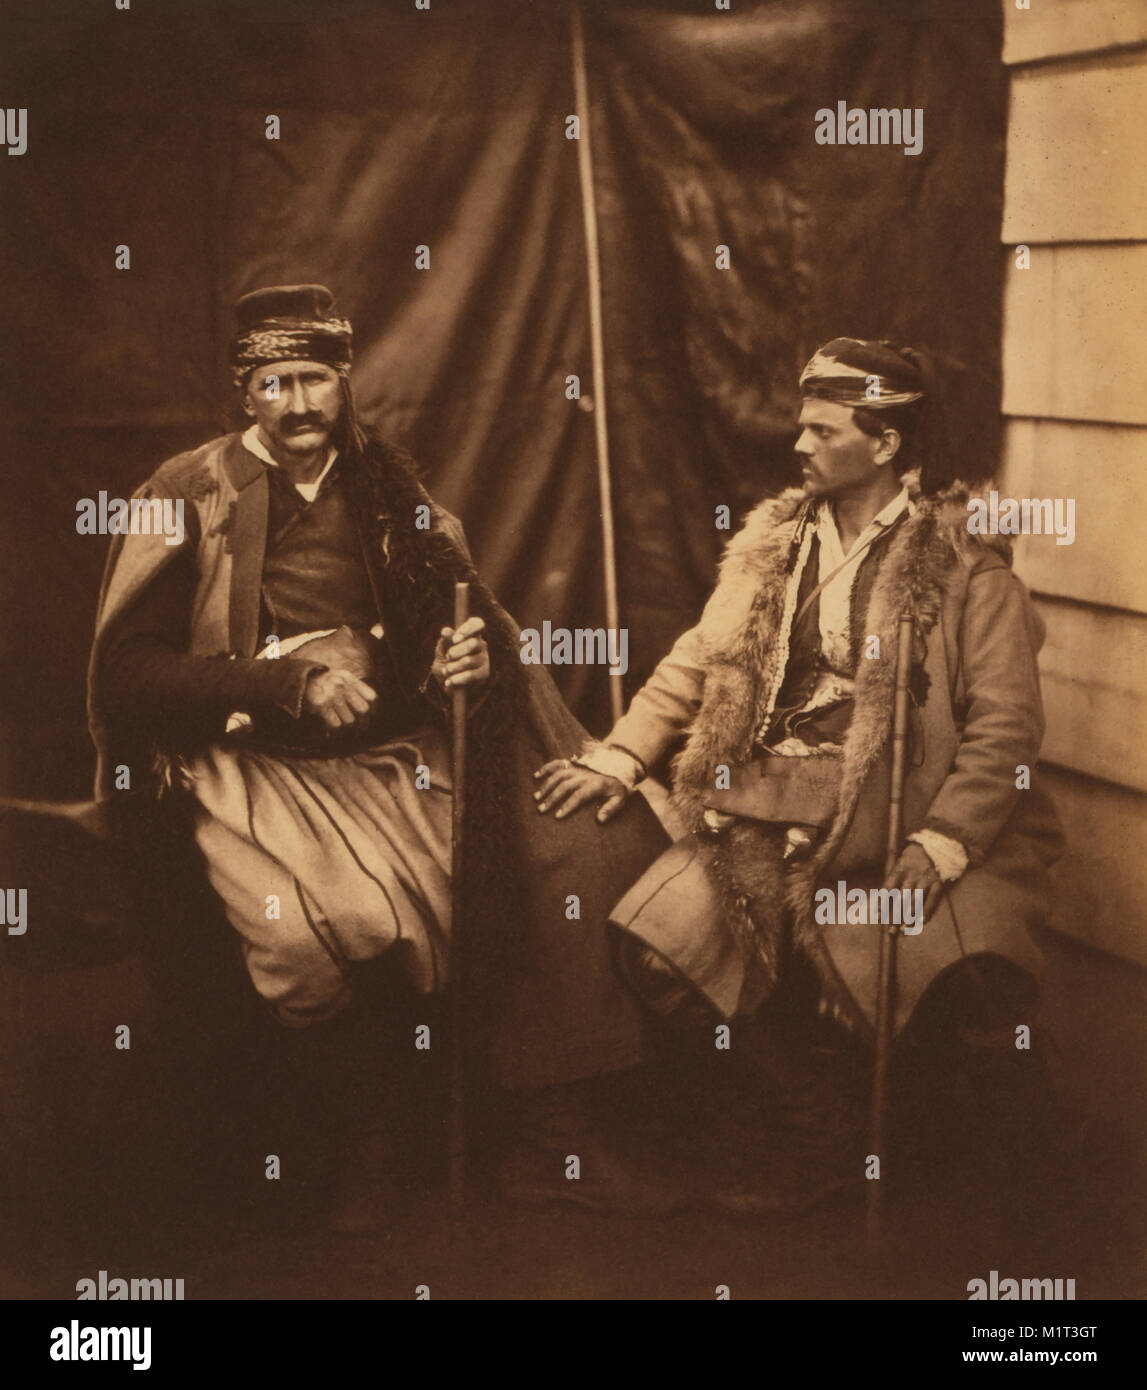 Discussion between two Croats, Full-Length Seated Portrait, Crimean War, Crimea, Ukraine, by Roger Fenton, 1855 - Stock Image